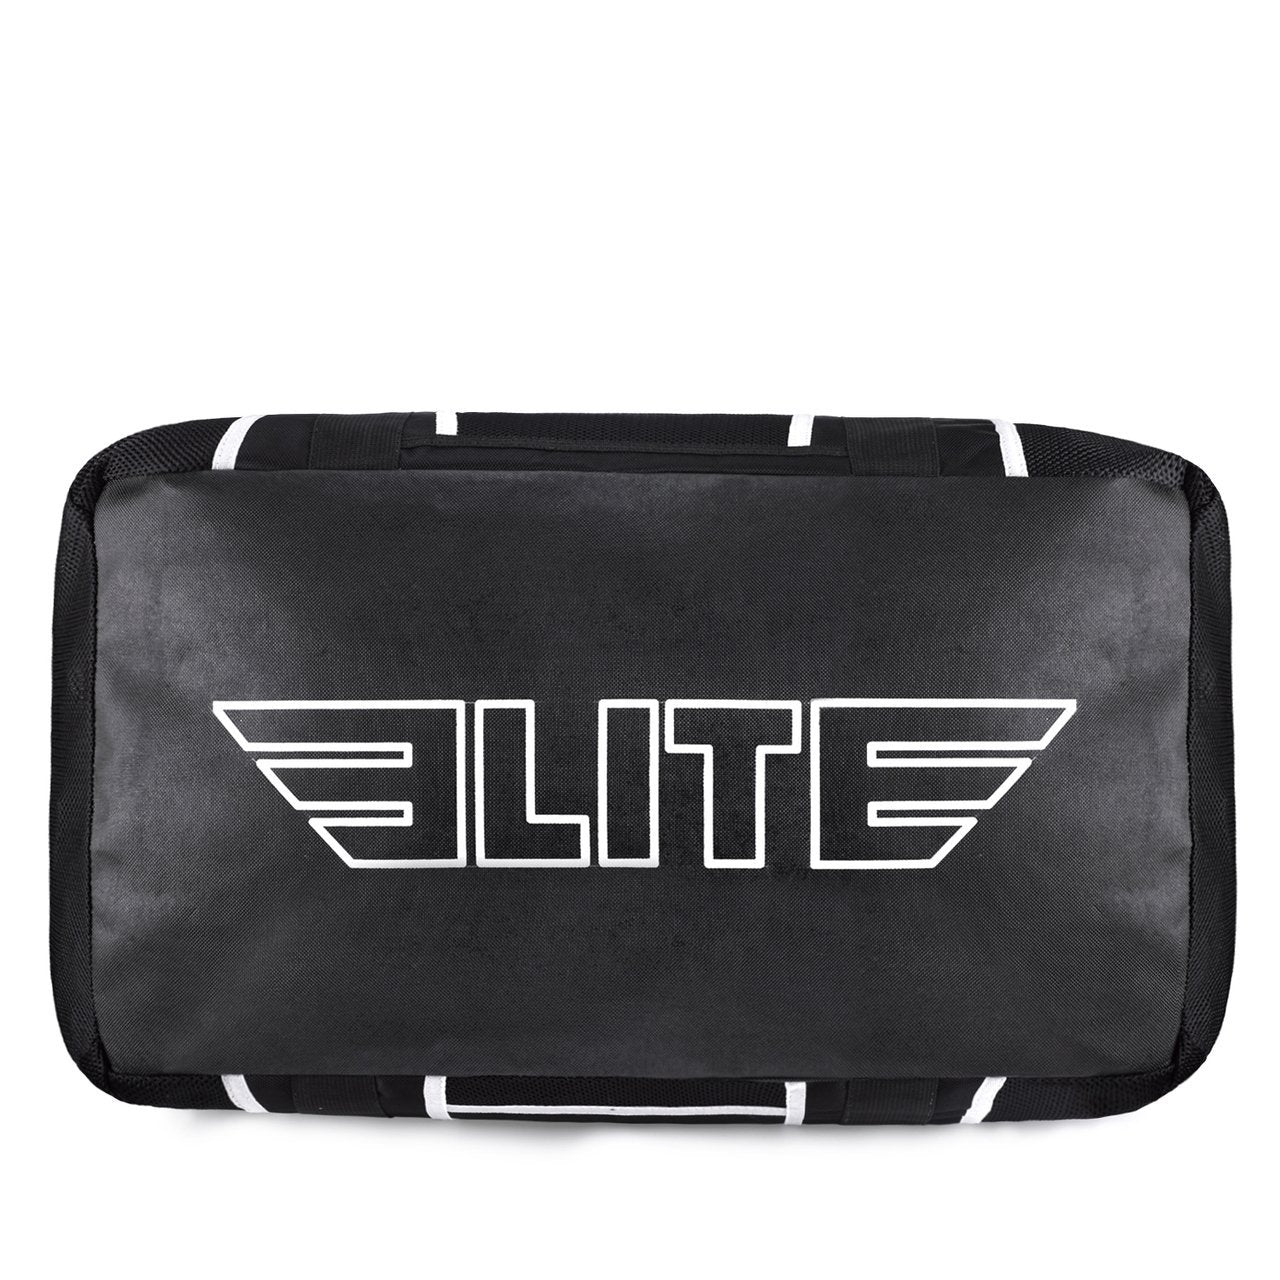 Load image into Gallery viewer, Elite Sports Warrior Series Black/White Strip Large Duffel Training Gear Gym Bag